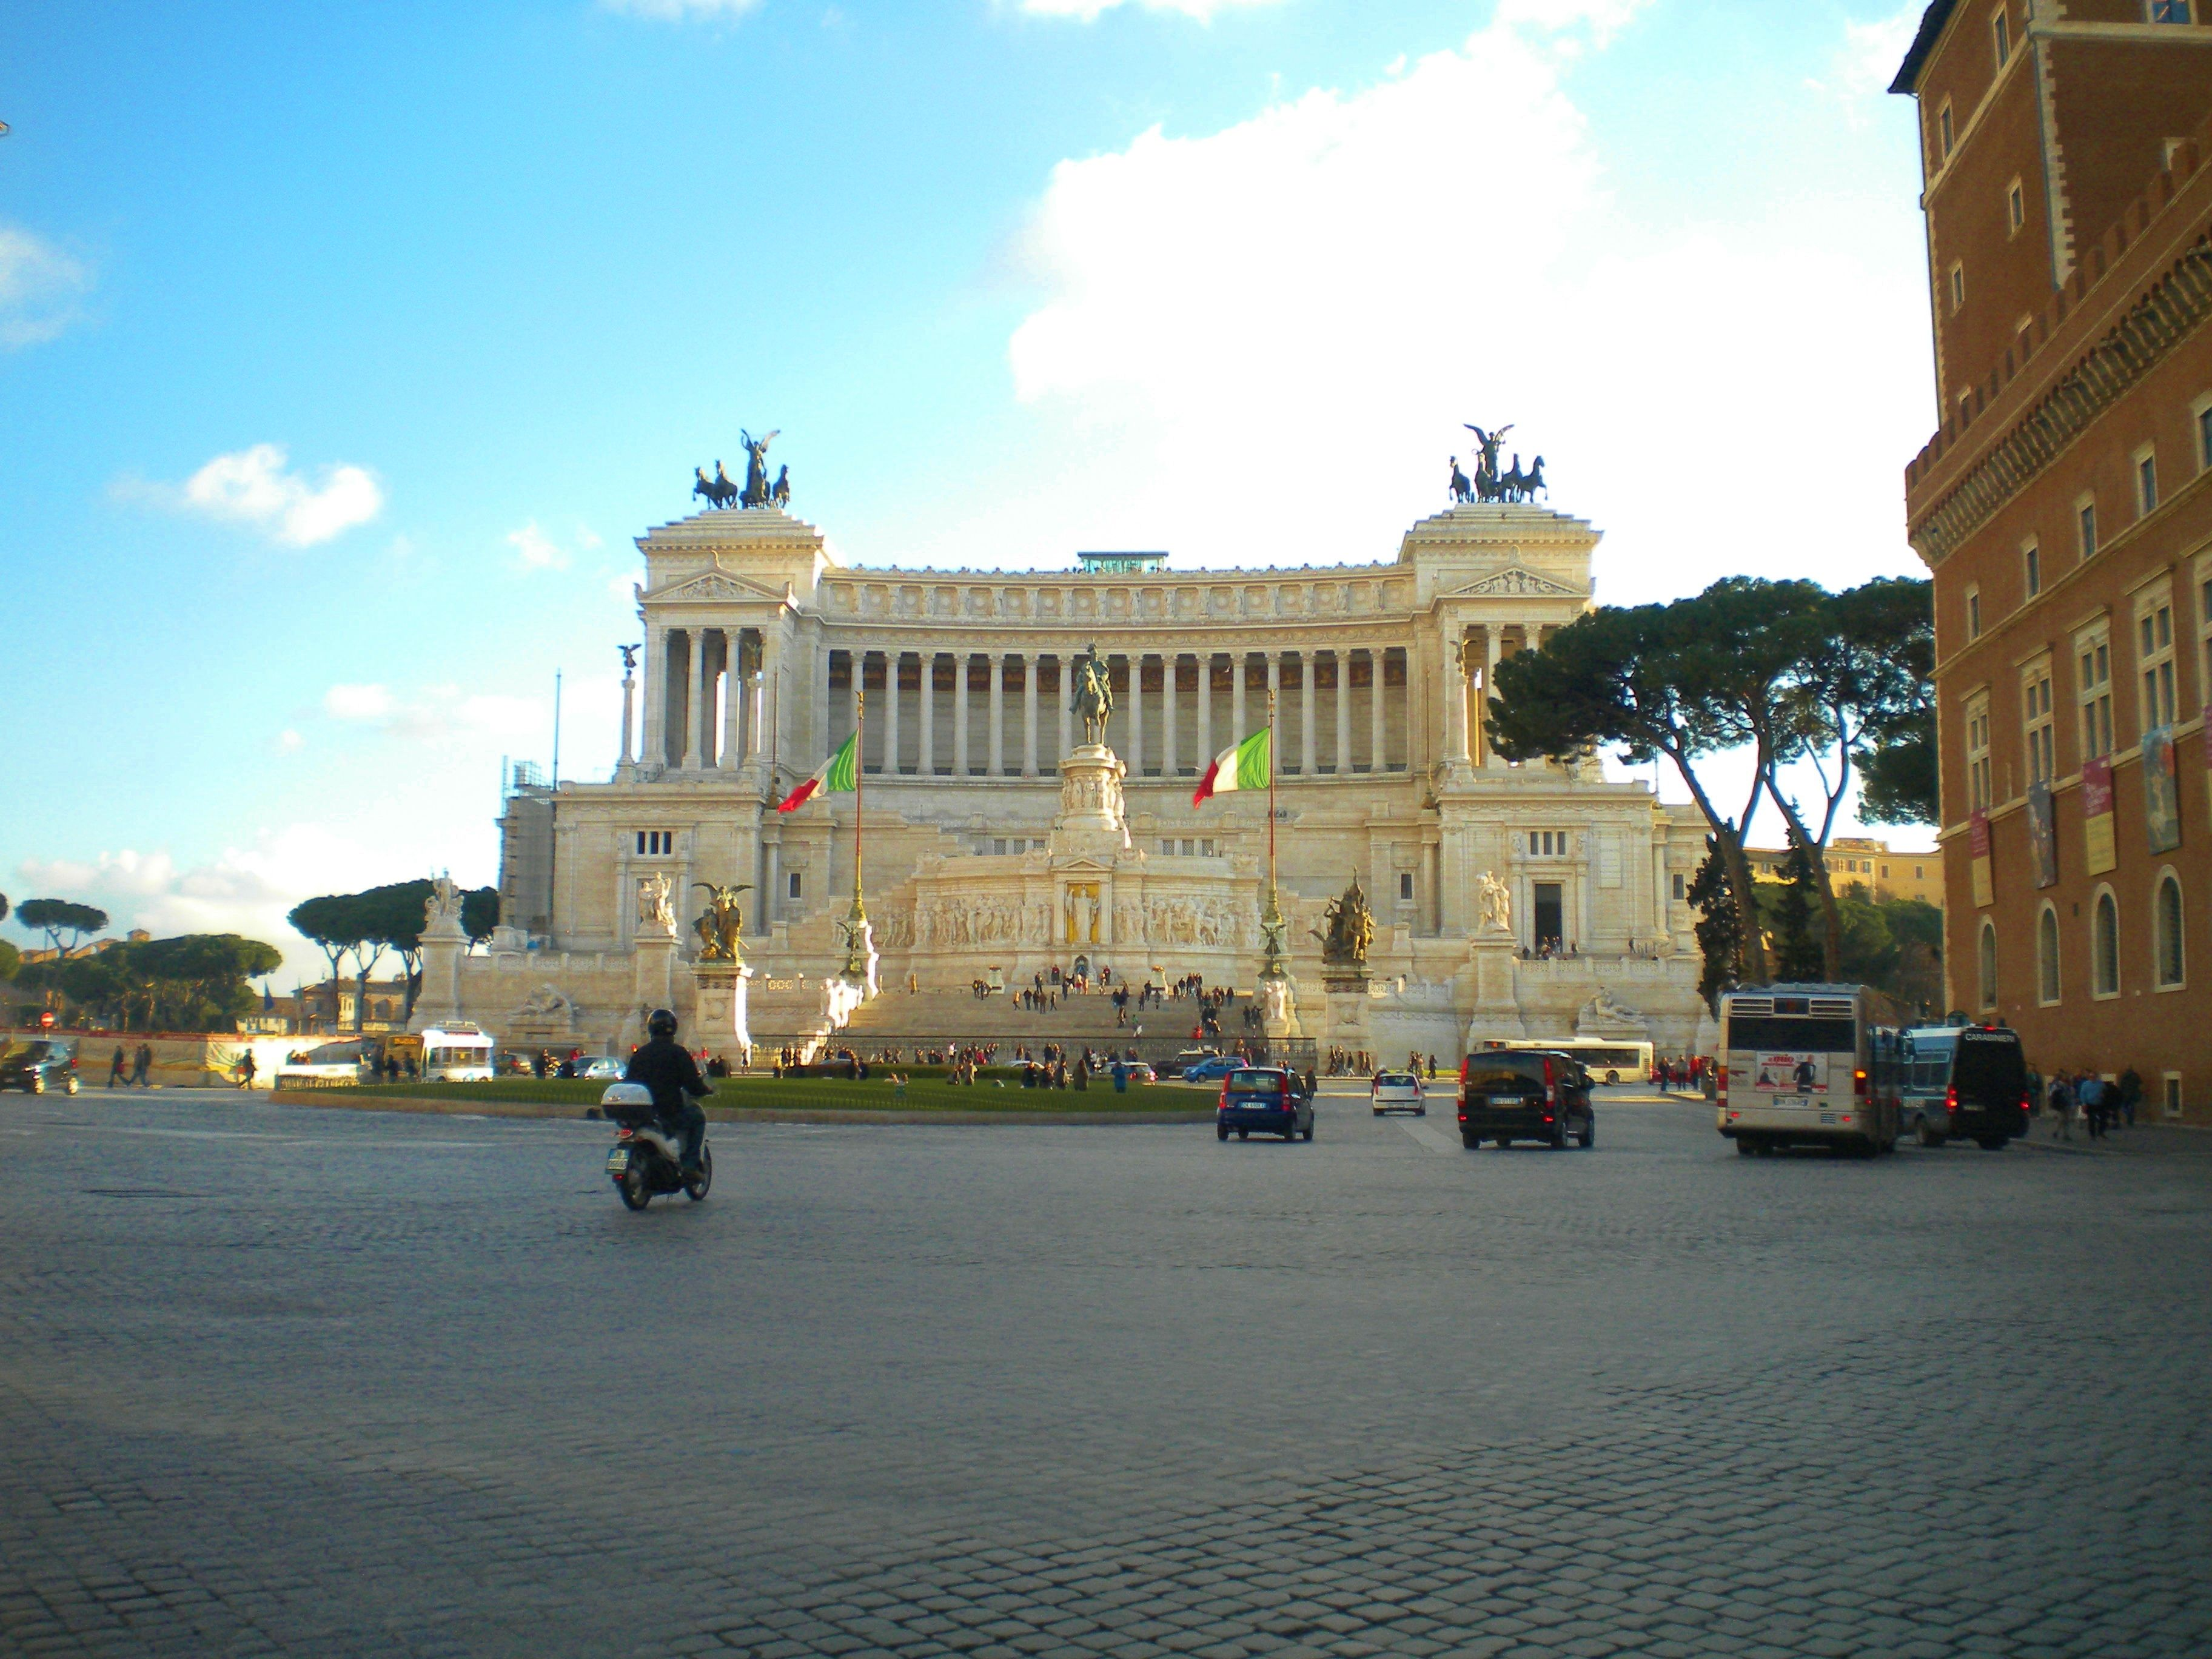 Piazza Venezia - Roma, Italia | Places ive been, Places, Italy